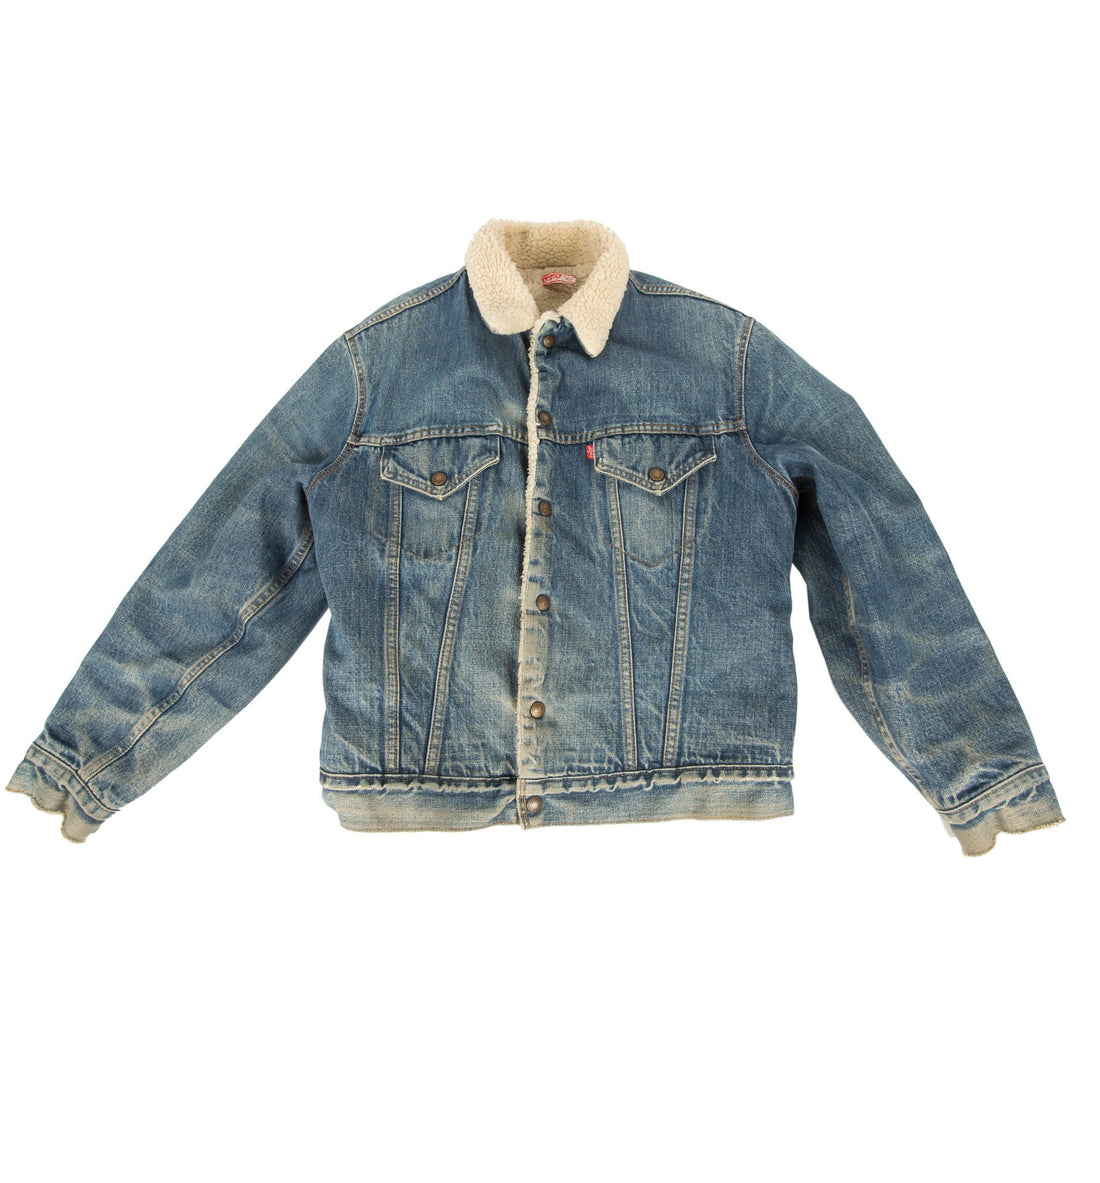 Vintage 70's Sherpa Lined Levis Trucker Jacket, size 42 - Vintage - Iron and Resin